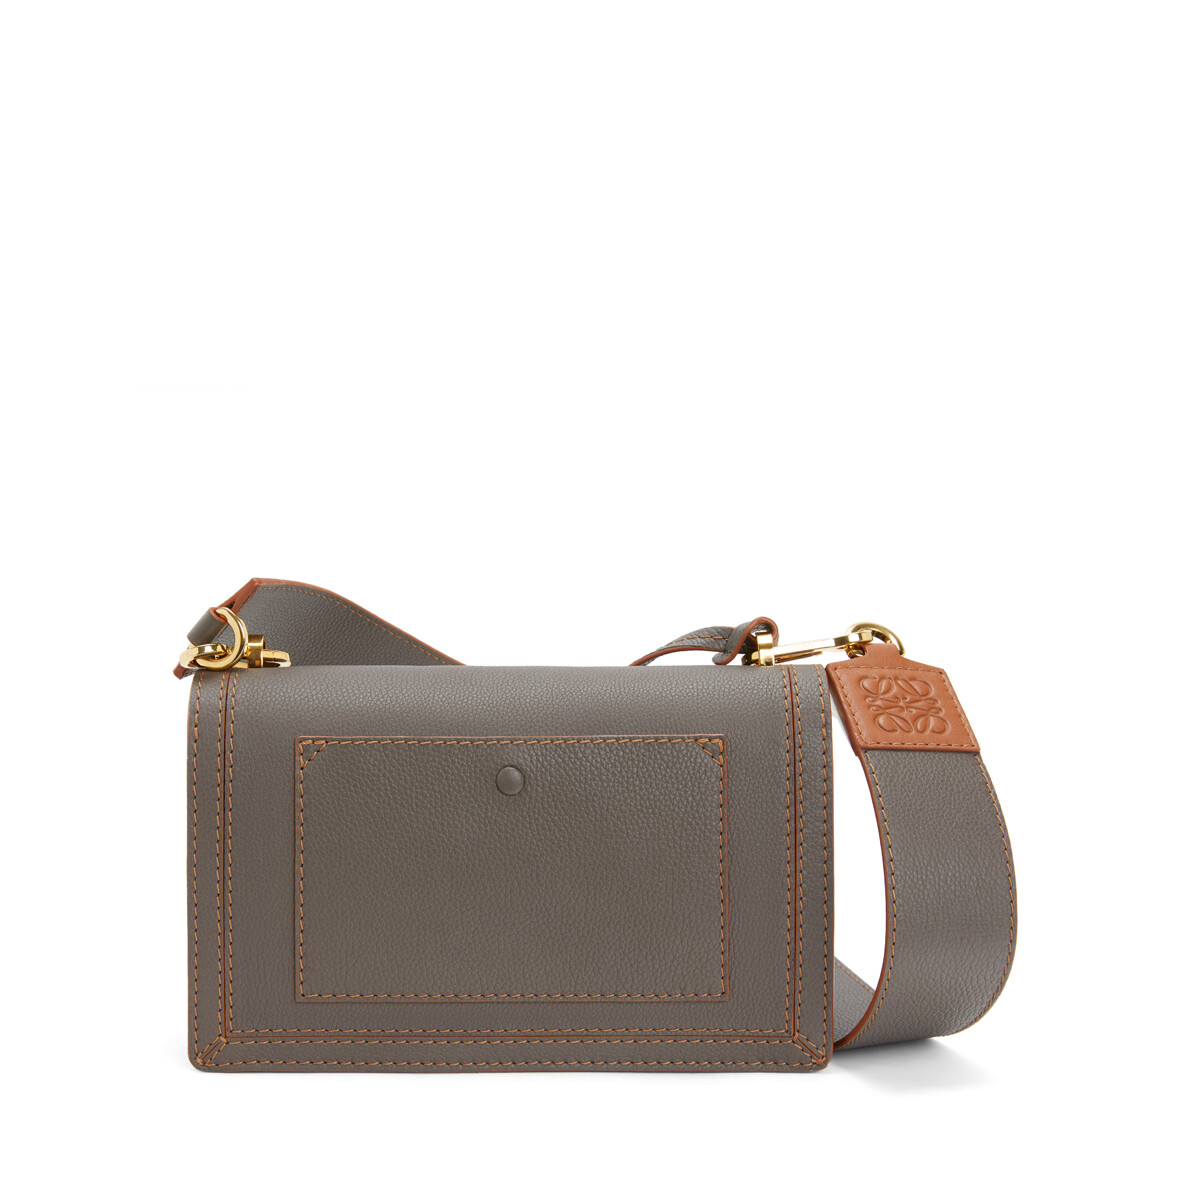 LOEWE Bolso Barcelona Soft Topo Oscuro front